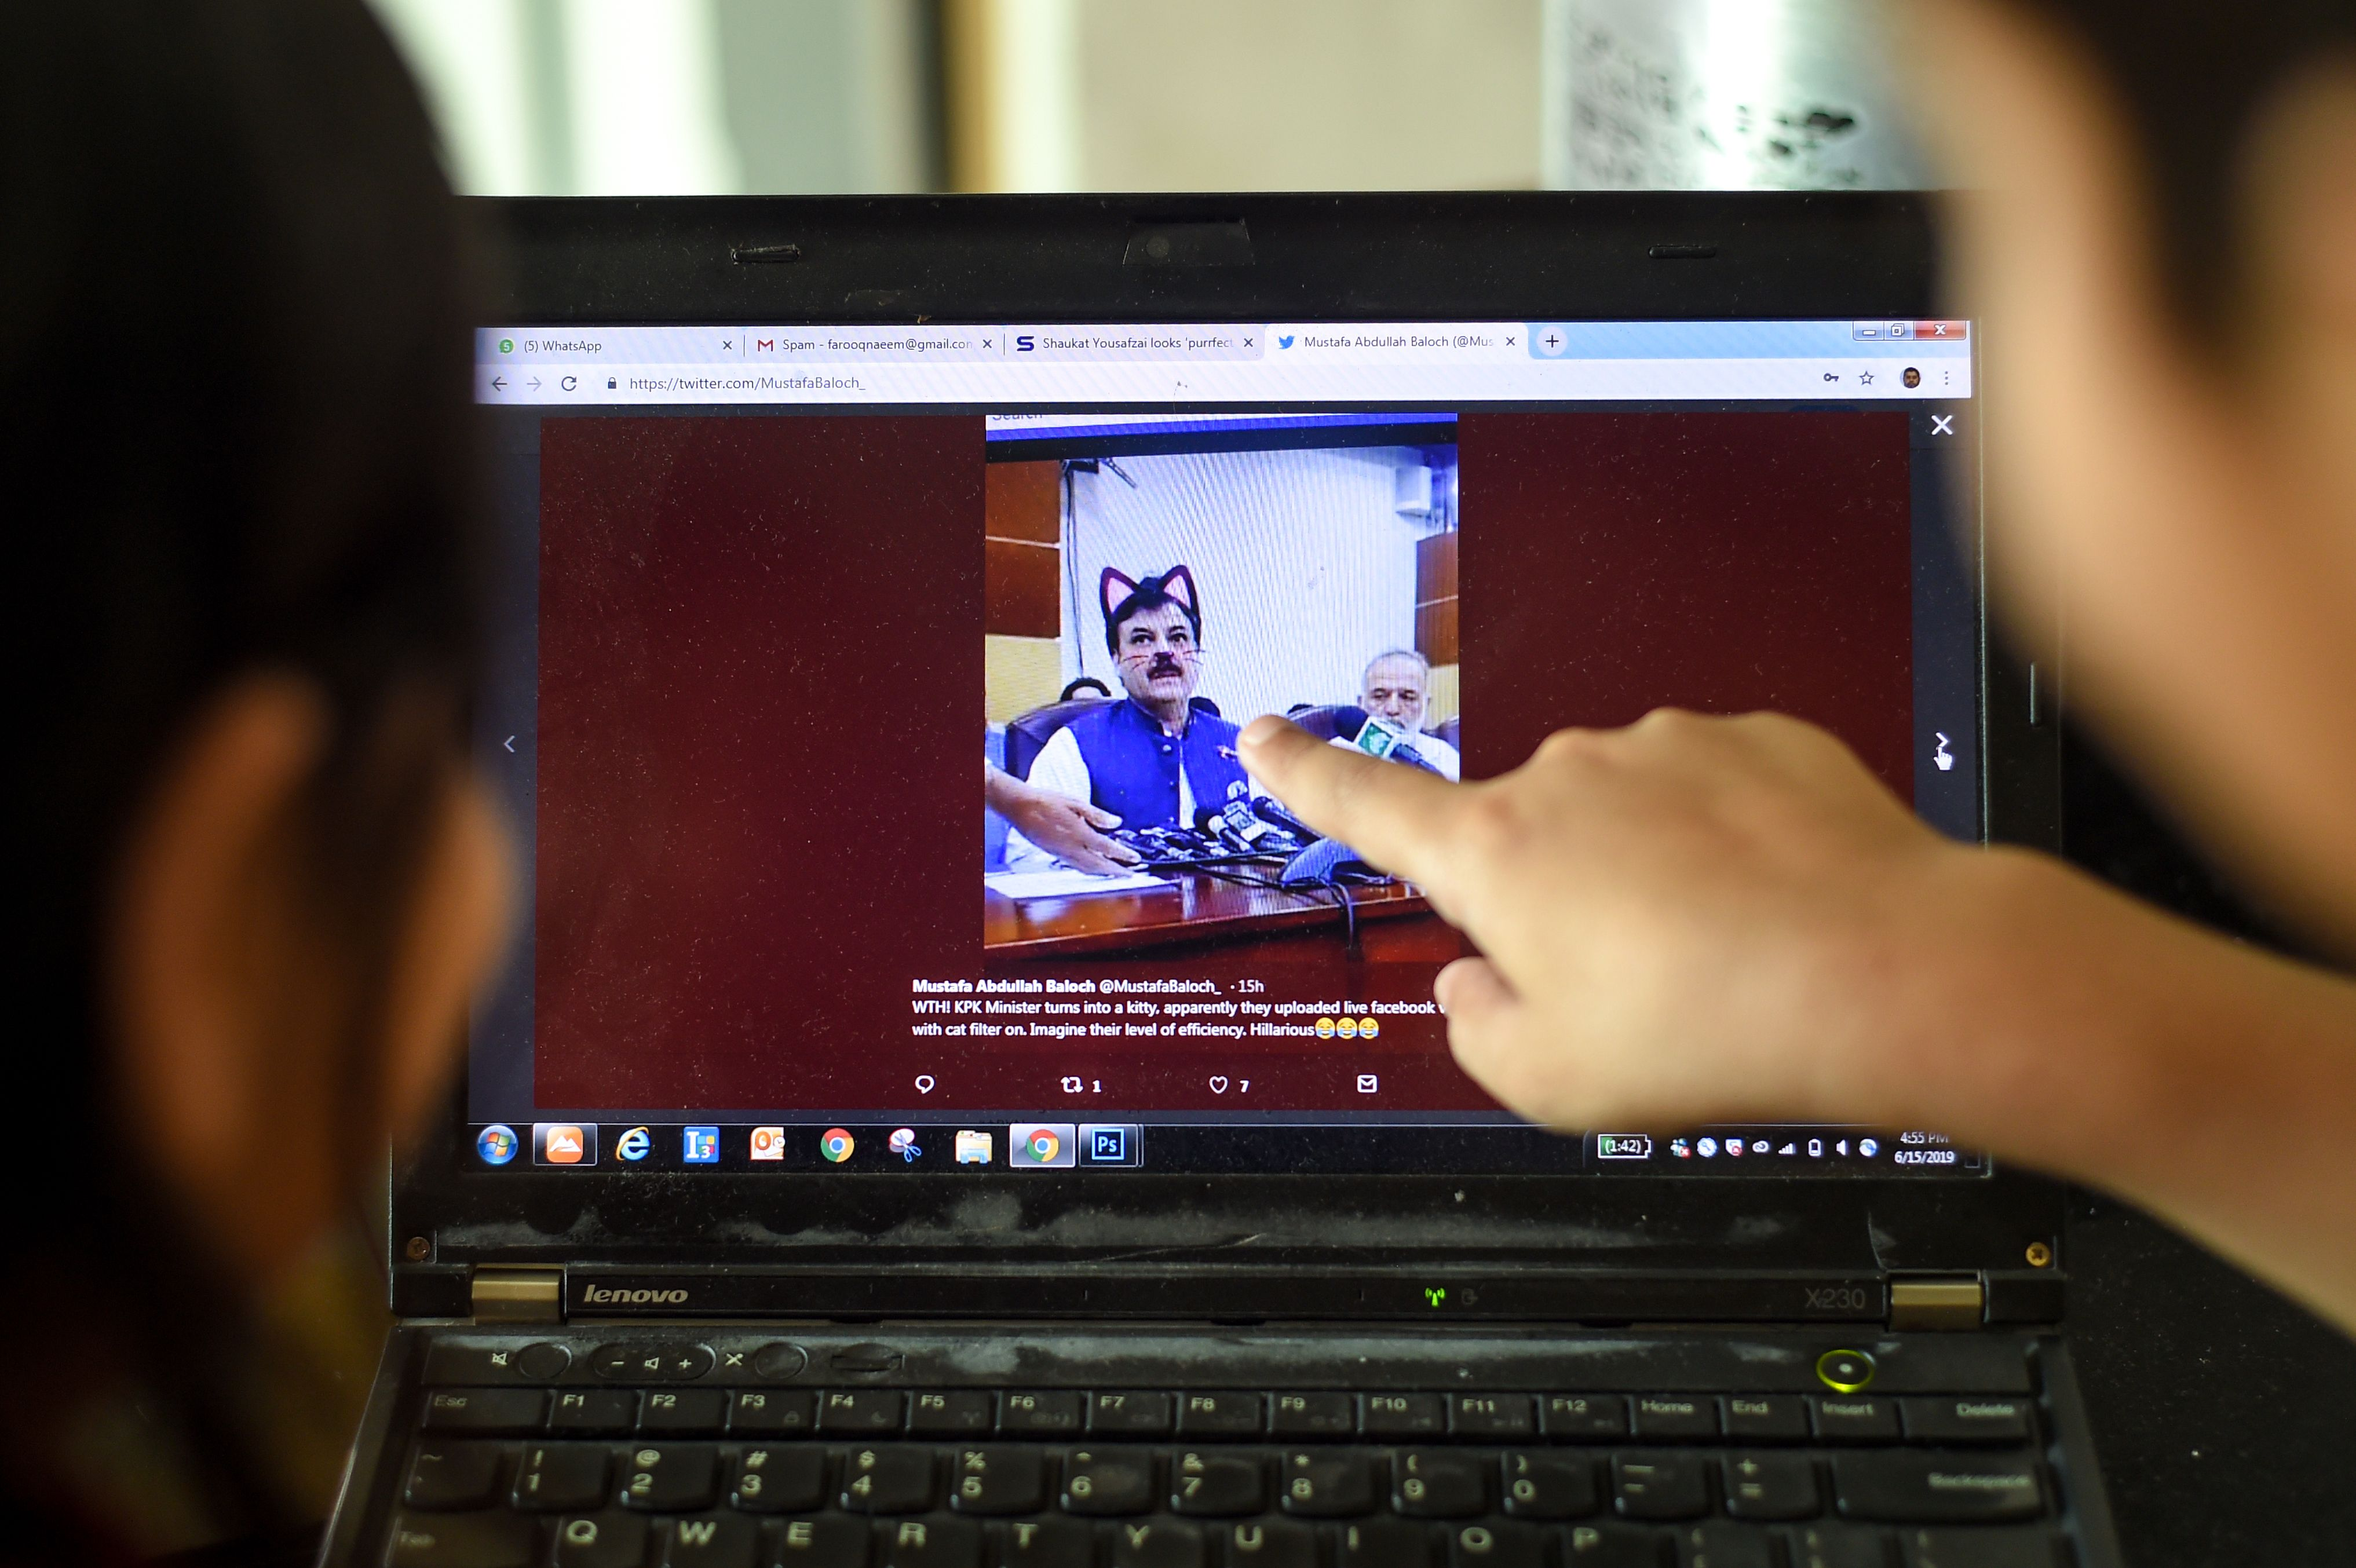 A minister in Pakistan's northwestern Khyber Pakhtunkhwa province had to face a hilarious situation after his entire media talks went live with a cat filter on by his social media team (Photo credit: FAROOQ NAEEM/AFP/Getty Images)